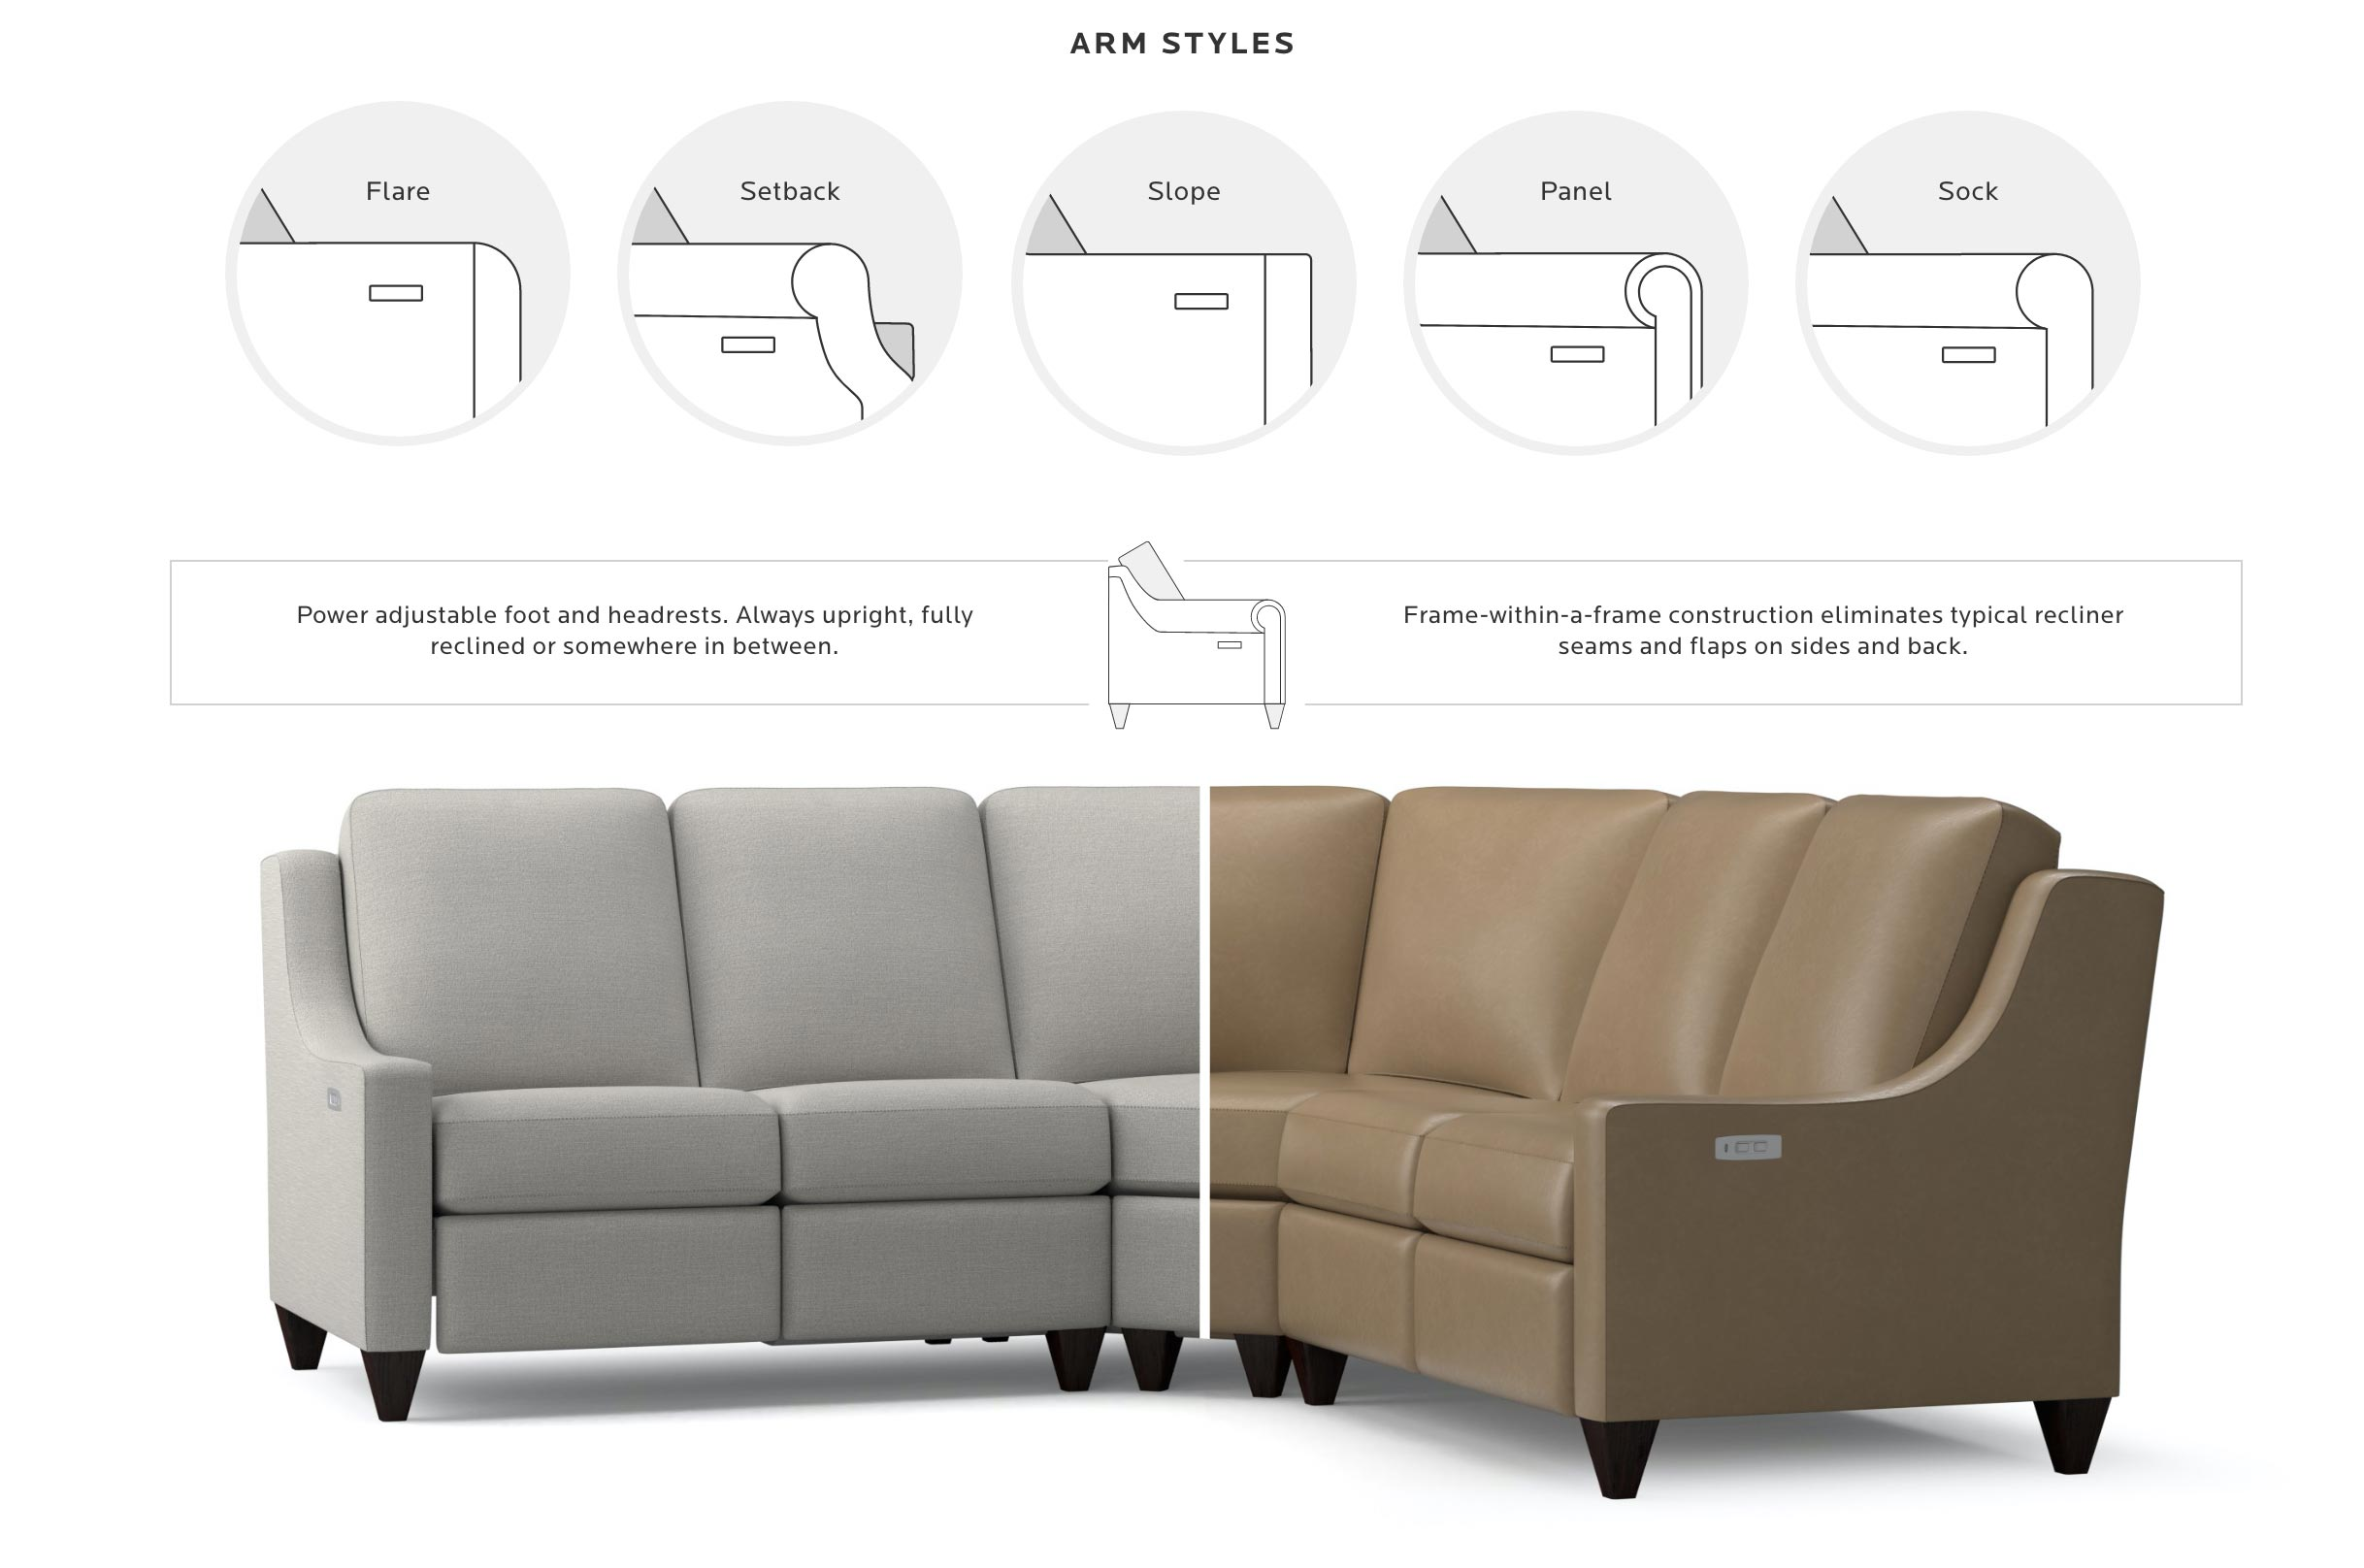 Sectional details. 5 Arm Styles. - Tablet